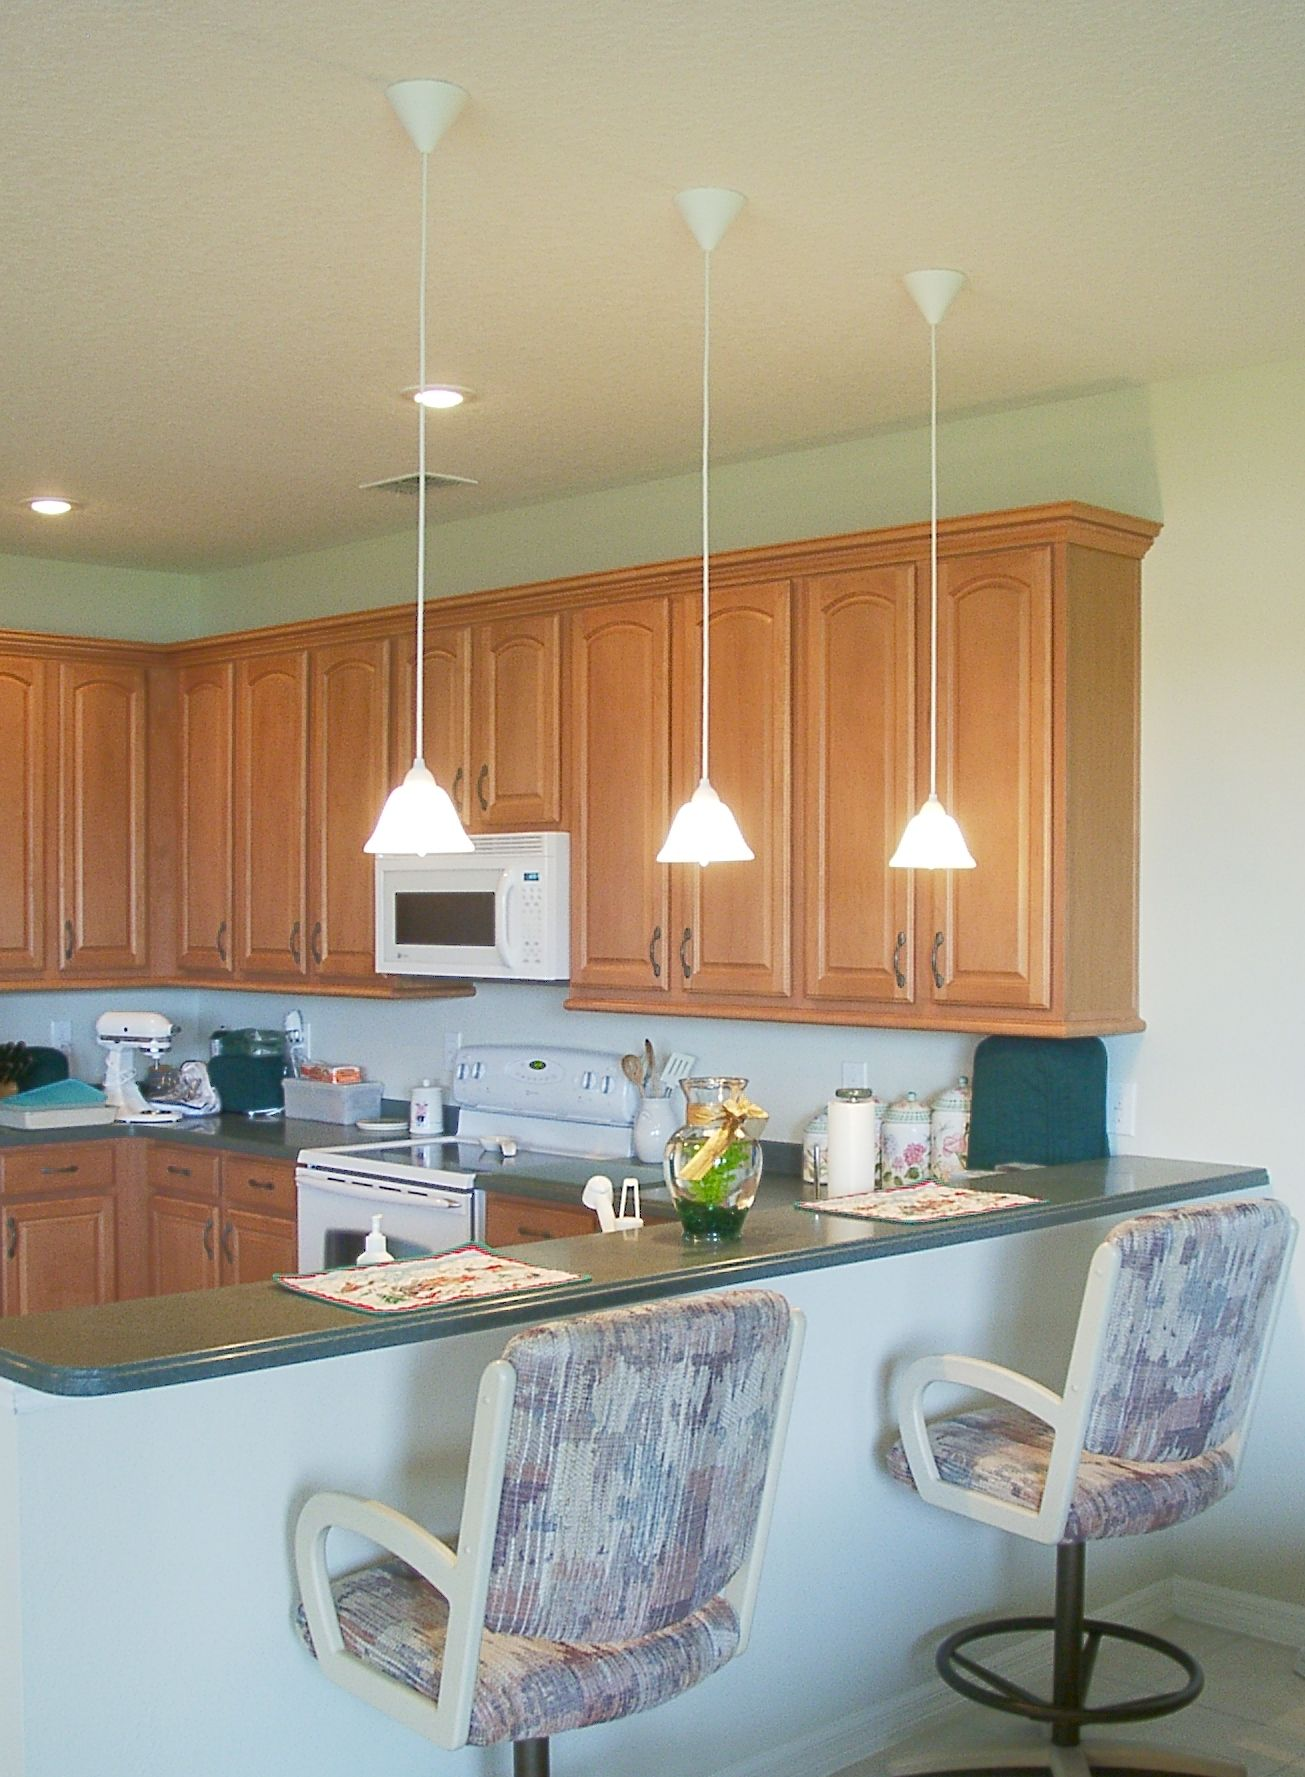 Kitchen Counter Light Hang Lights Over Kitchen Counter Home Ideas